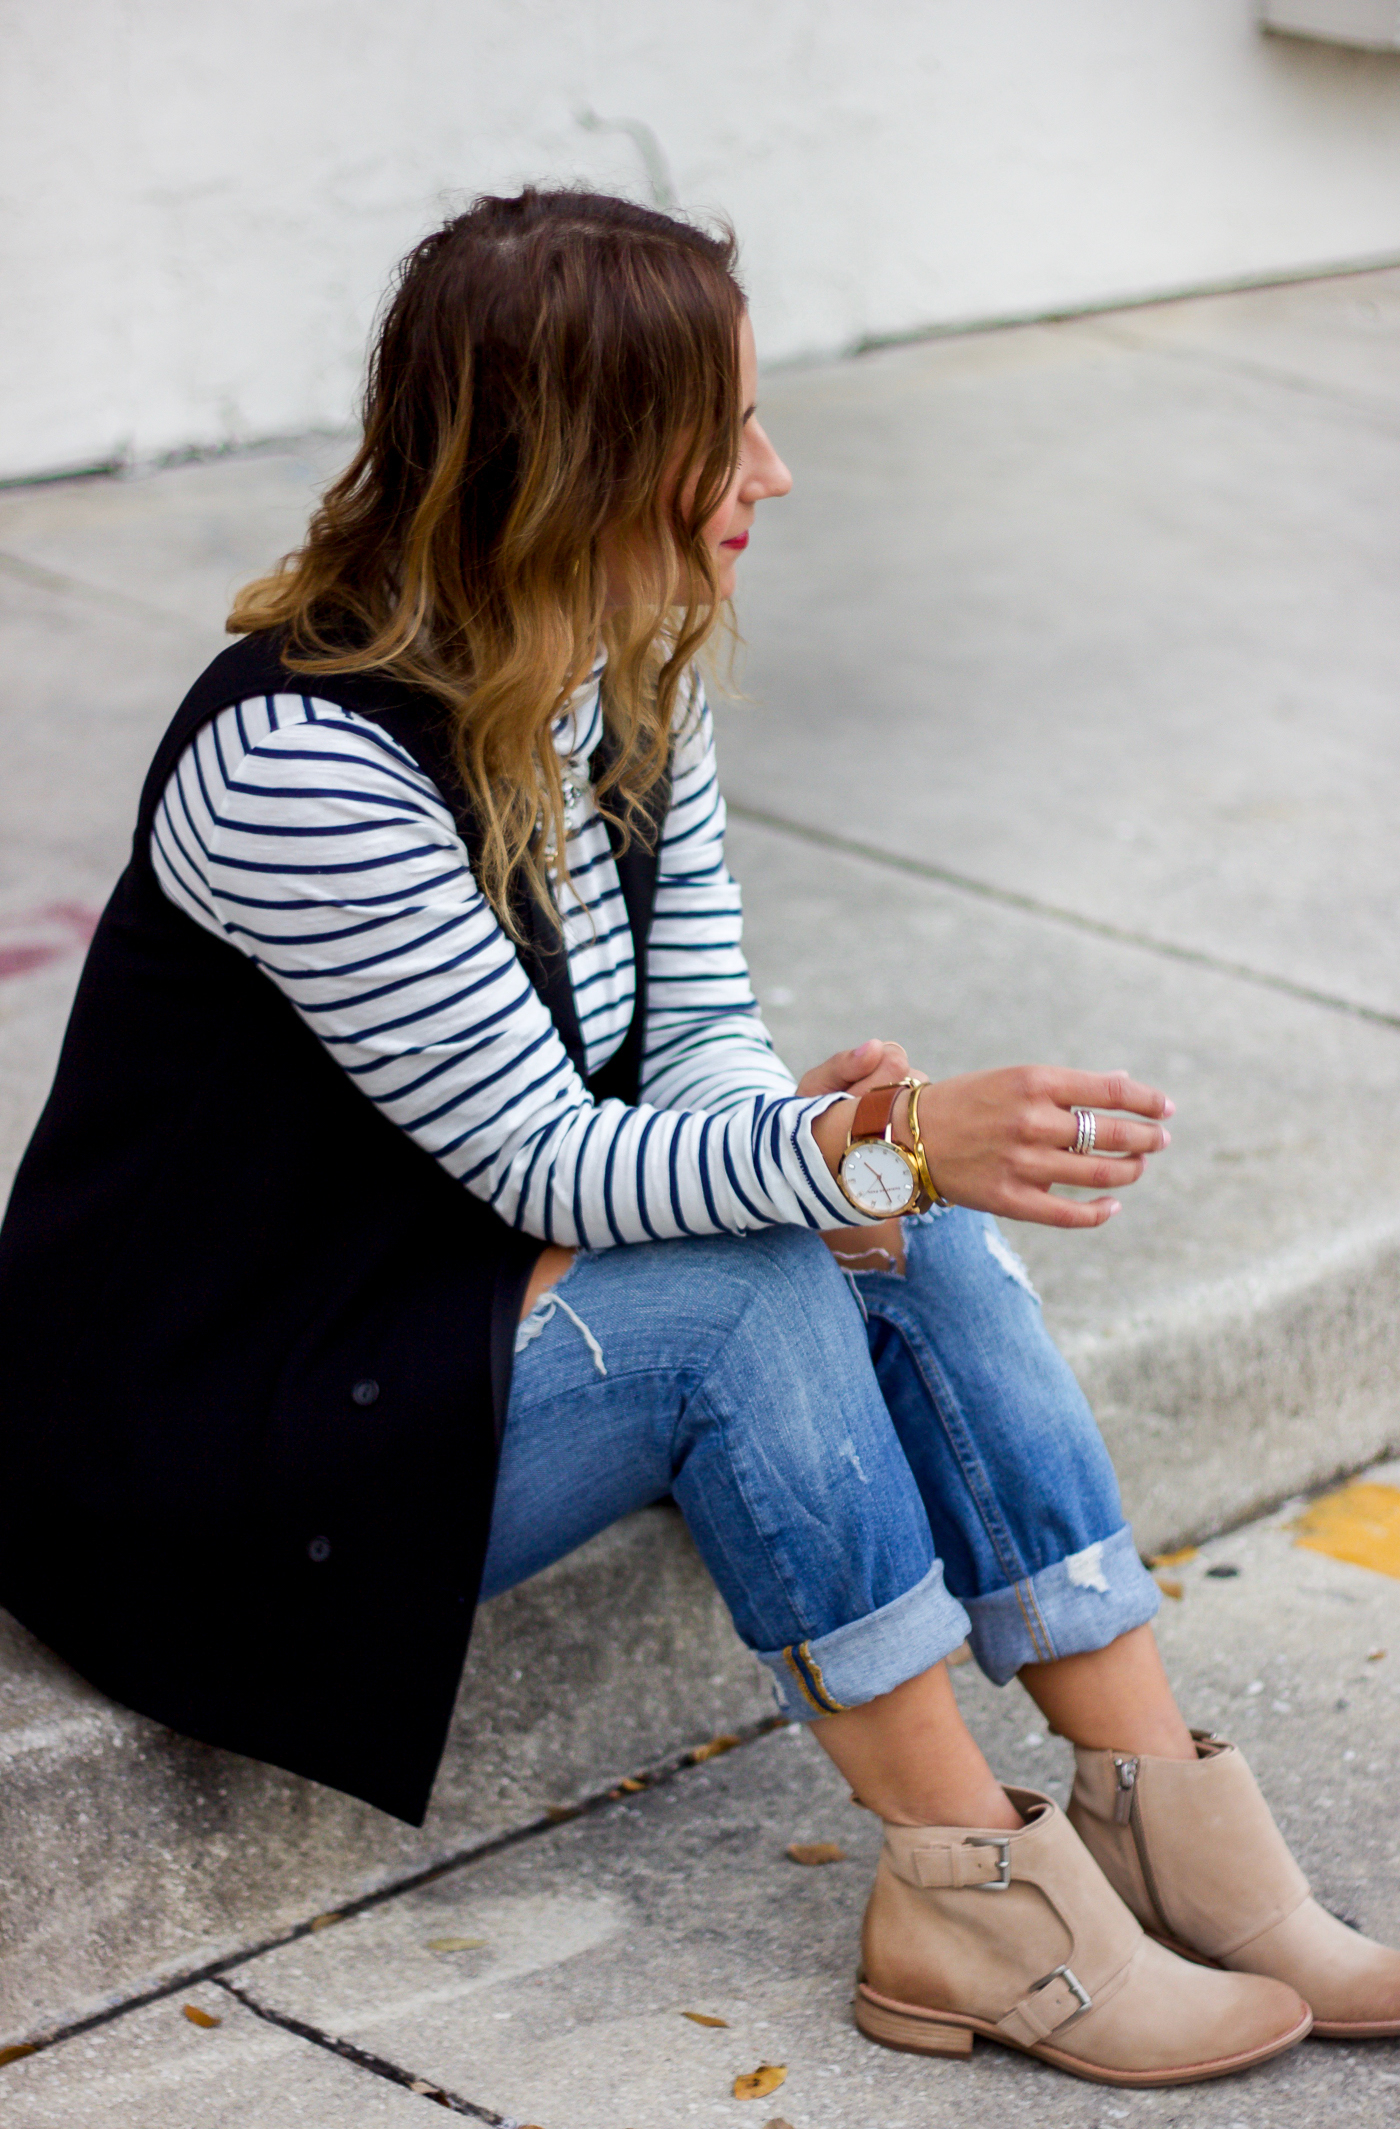 Canadian fashion and lifestyle blogger, Jackie of Something About That is wearing a striped turtleneck and a black vest with jeans